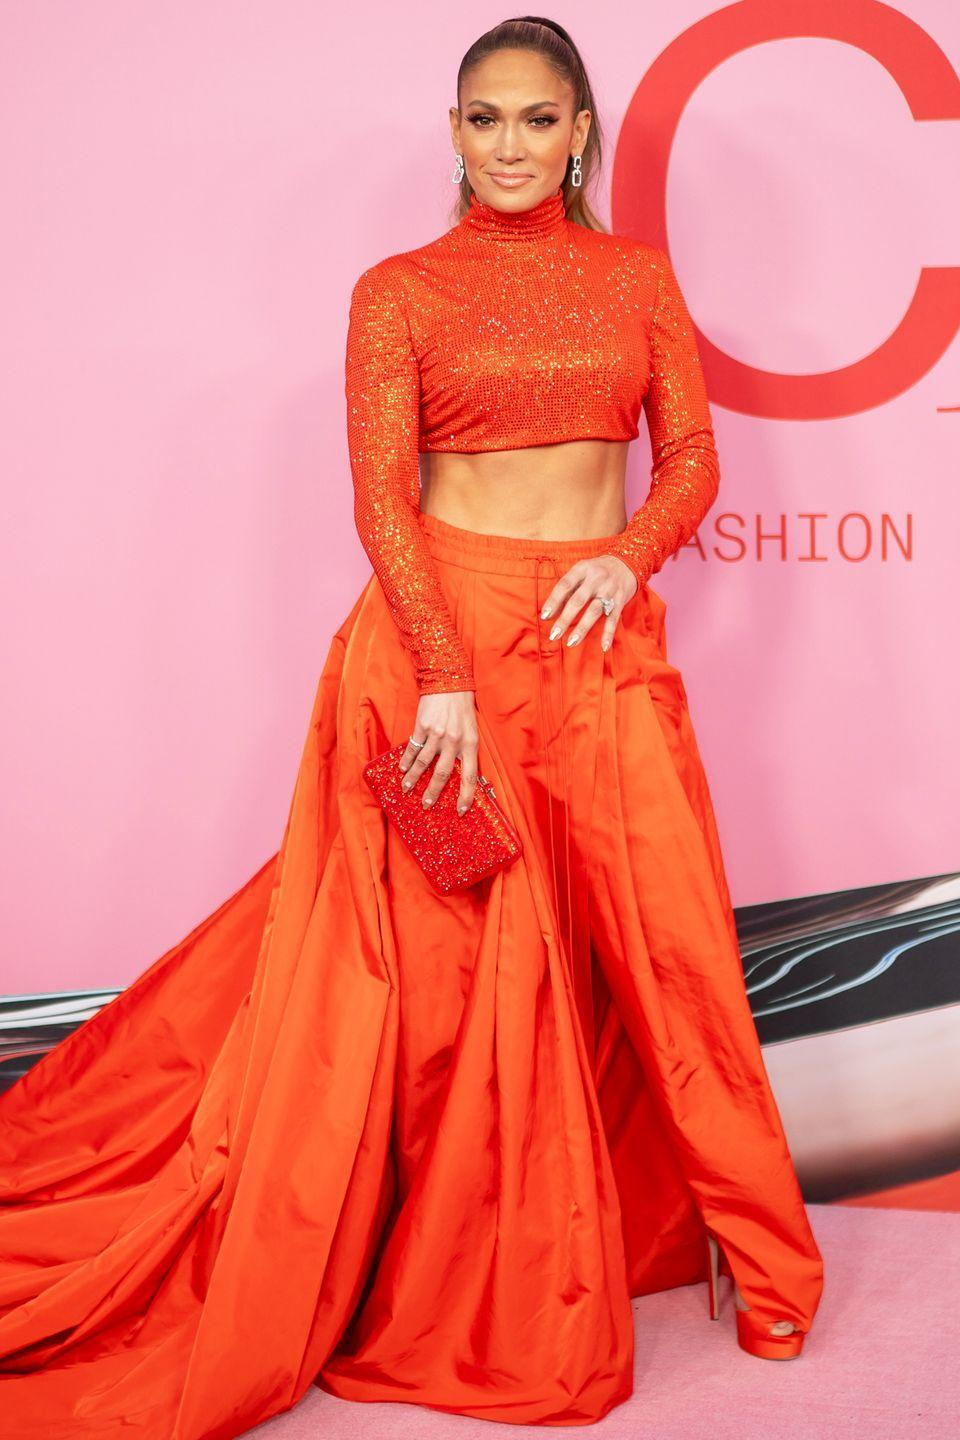 """<p>Who: Jennifer Lopez </p><p>When: June 03, 2019</p><p>Wearing: Ralph Lauren</p><p>Why: Abs. <em>Abs. </em>ABS. While Jennifer Lopez was awarded the <a href=""""https://www.elle.com/culture/celebrities/a27705252/jennifer-lopez-dress-cfda-fashion-awards-2019/"""" rel=""""nofollow noopener"""" target=""""_blank"""" data-ylk=""""slk:Fashion Icon award this week at the CFDA Fashion Awards"""" class=""""link rapid-noclick-resp"""">Fashion Icon award this week at the CFDA Fashion Awards</a> in Brooklyn, New York, we were awarded with a deep mistrust of our current core workout routine. She styled her abdominal muscles with an archived look from Ralph Lauren's Fall 1999 collection, thus winning her—and again, her abs—ELLE.com's best dressed celeb of the week. </p>"""